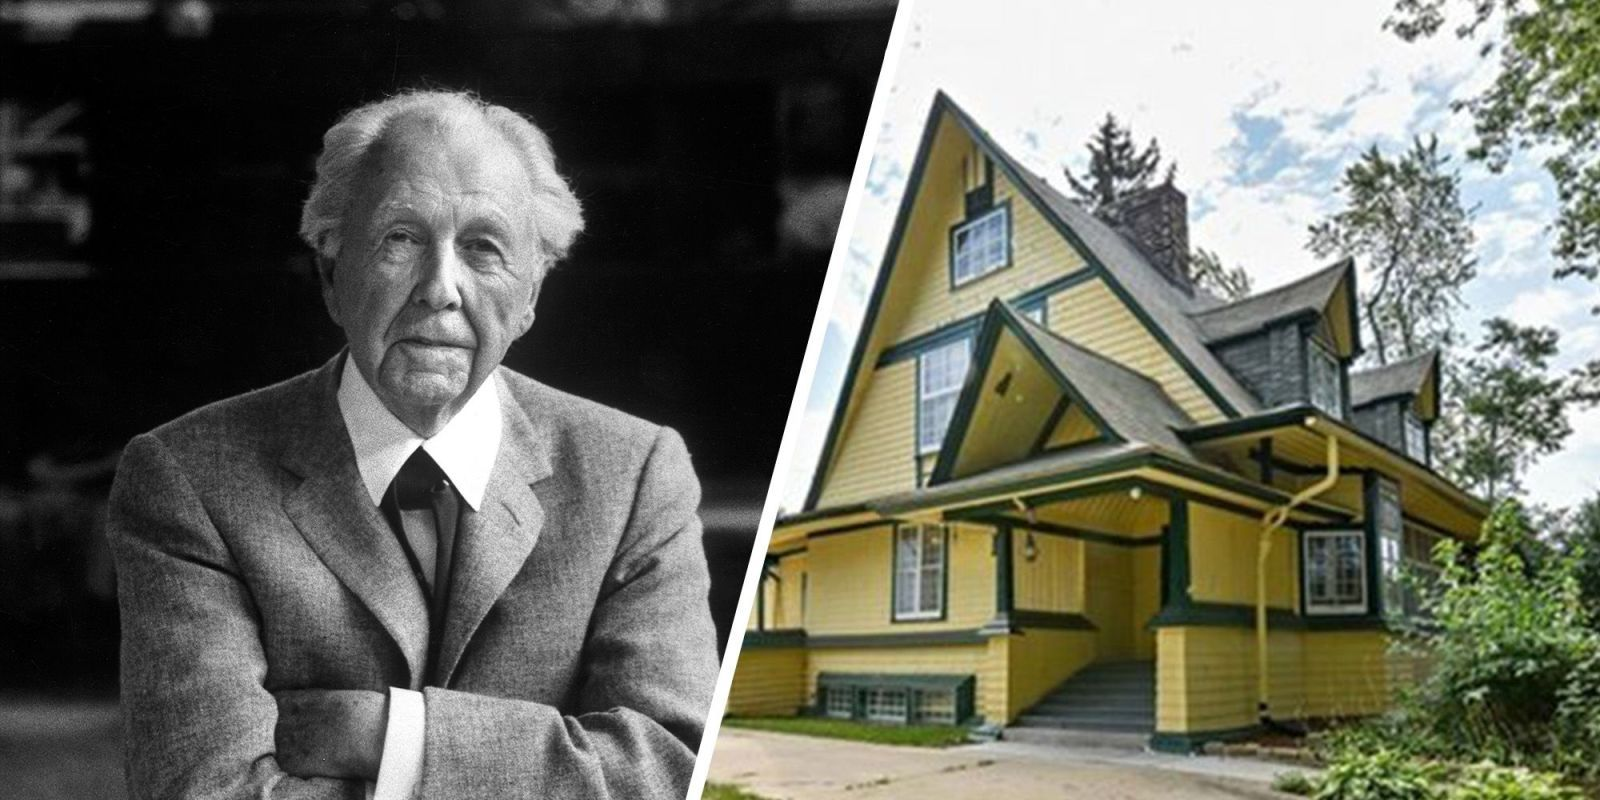 This Rare Frank Lloyd Wright House Could Be Yours for $195,000